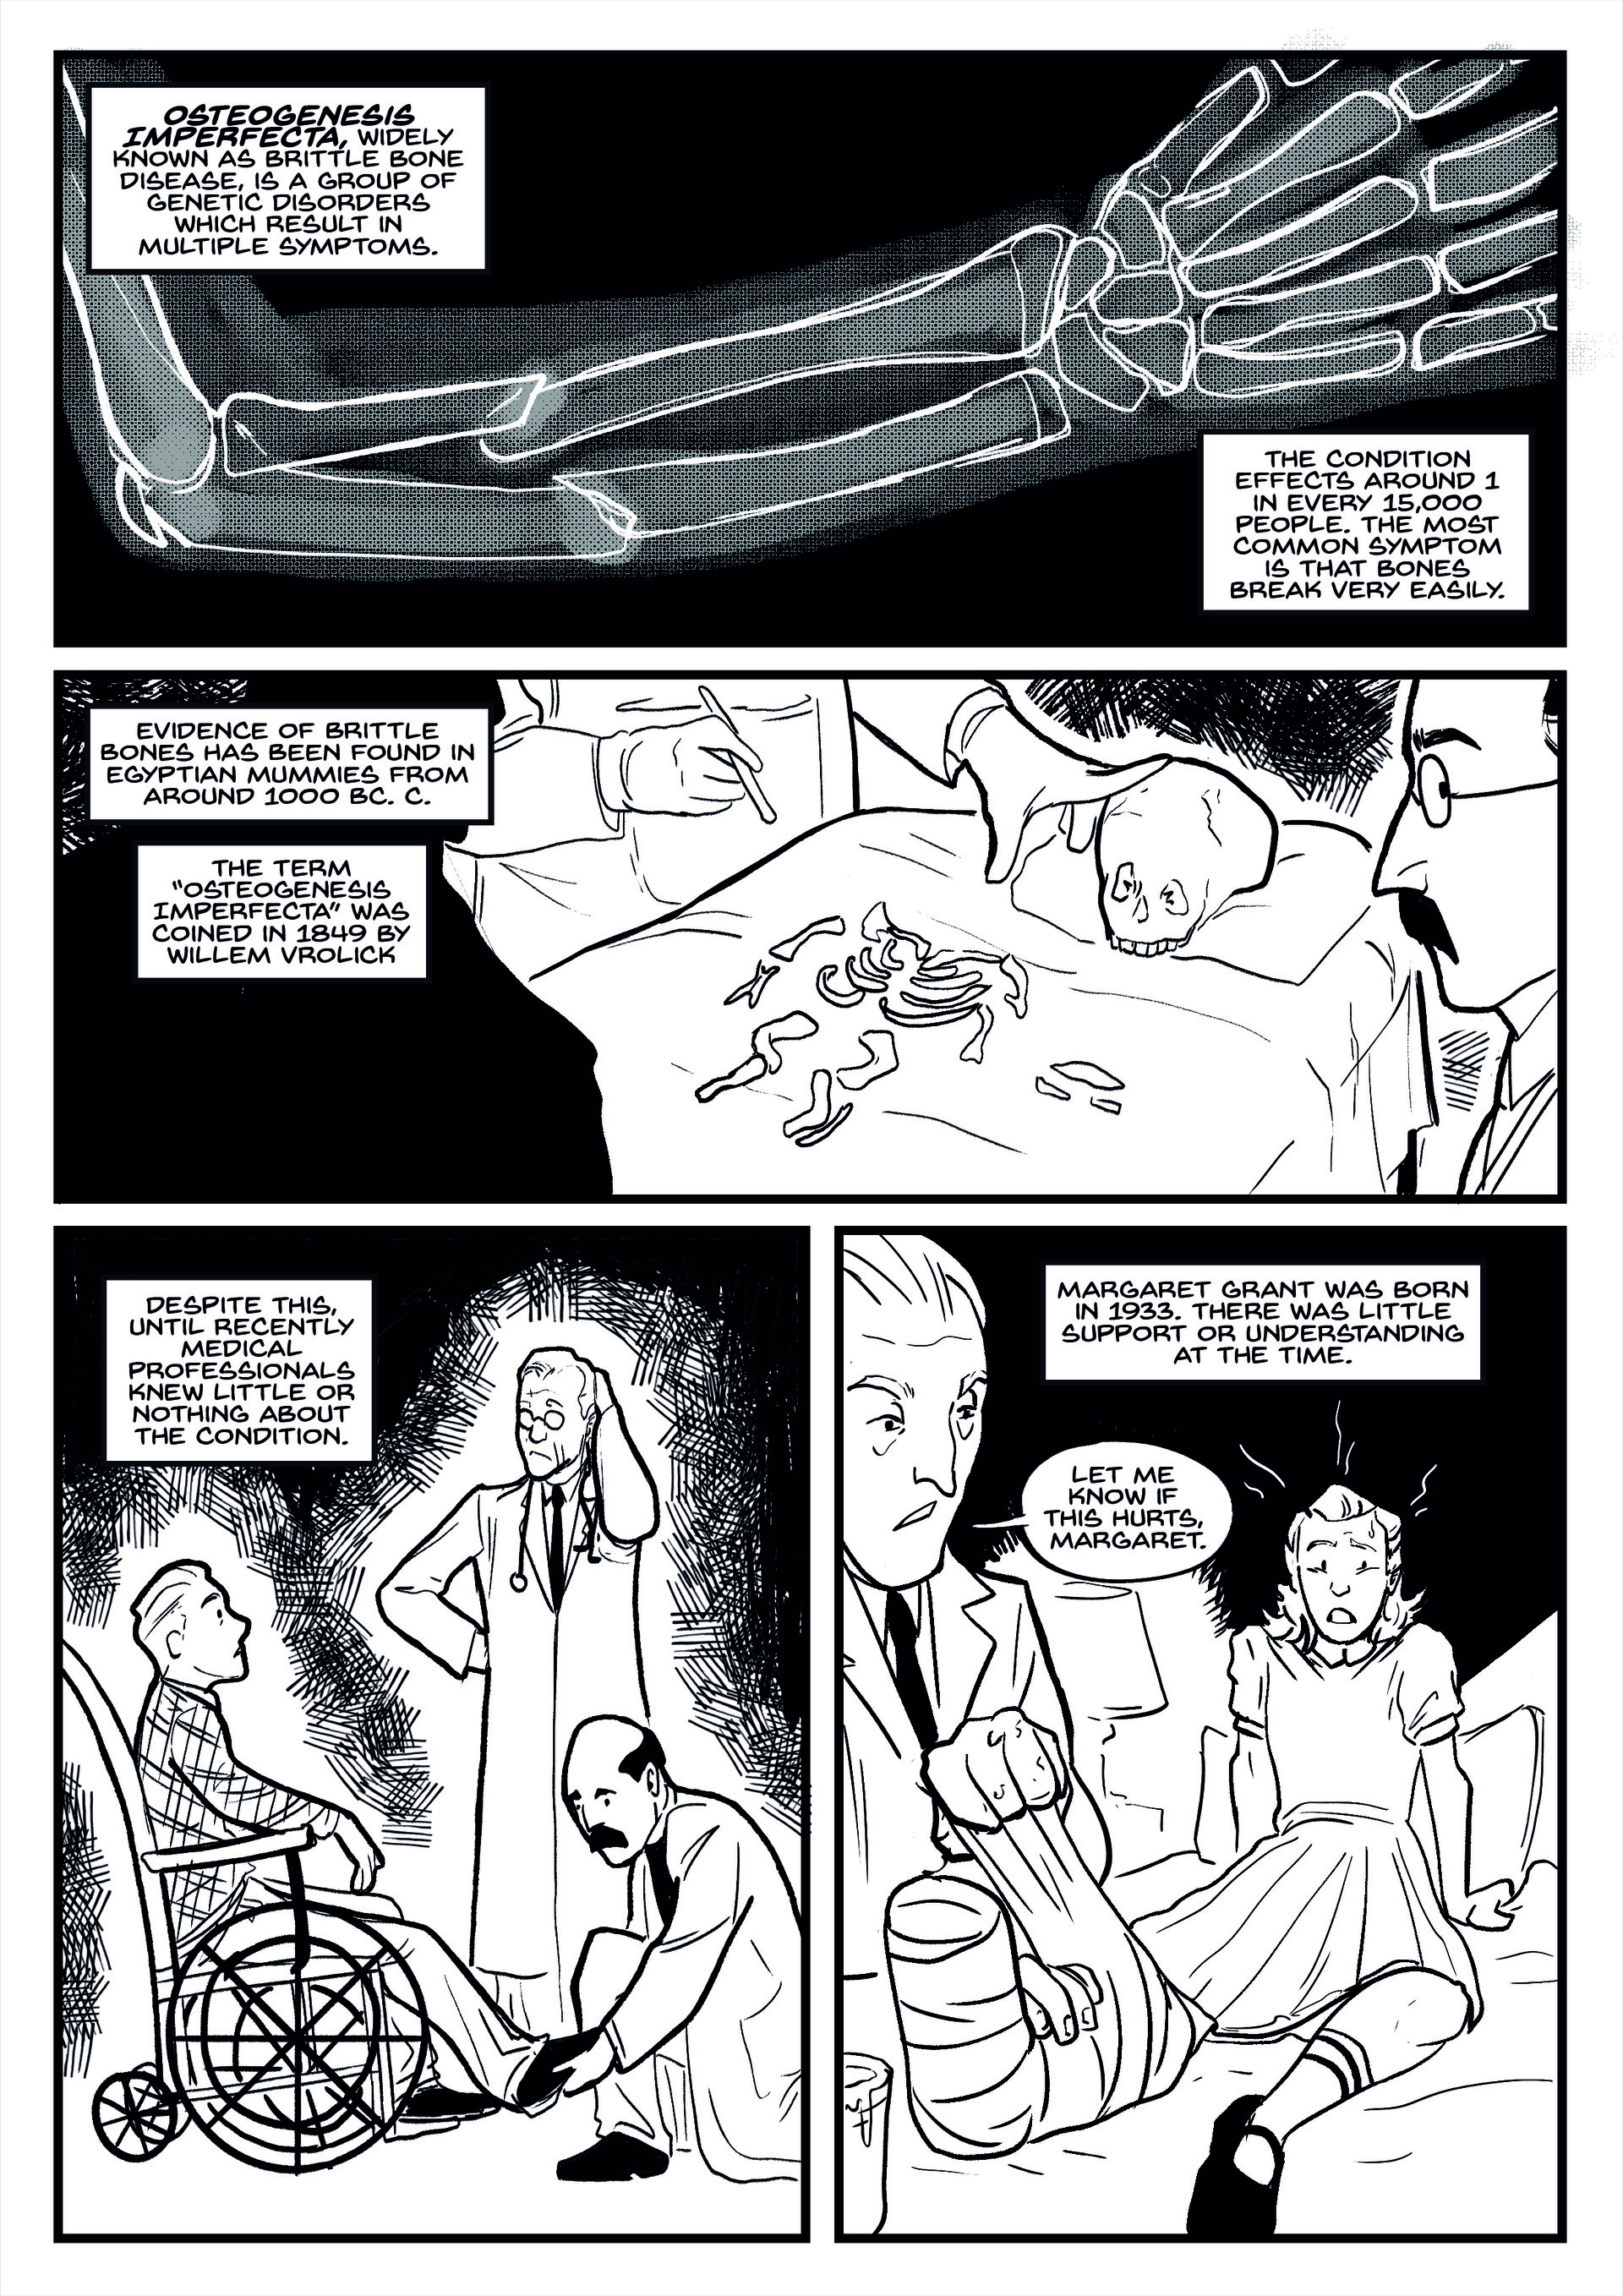 Elliot balson brittle bone society comic page 1 inks